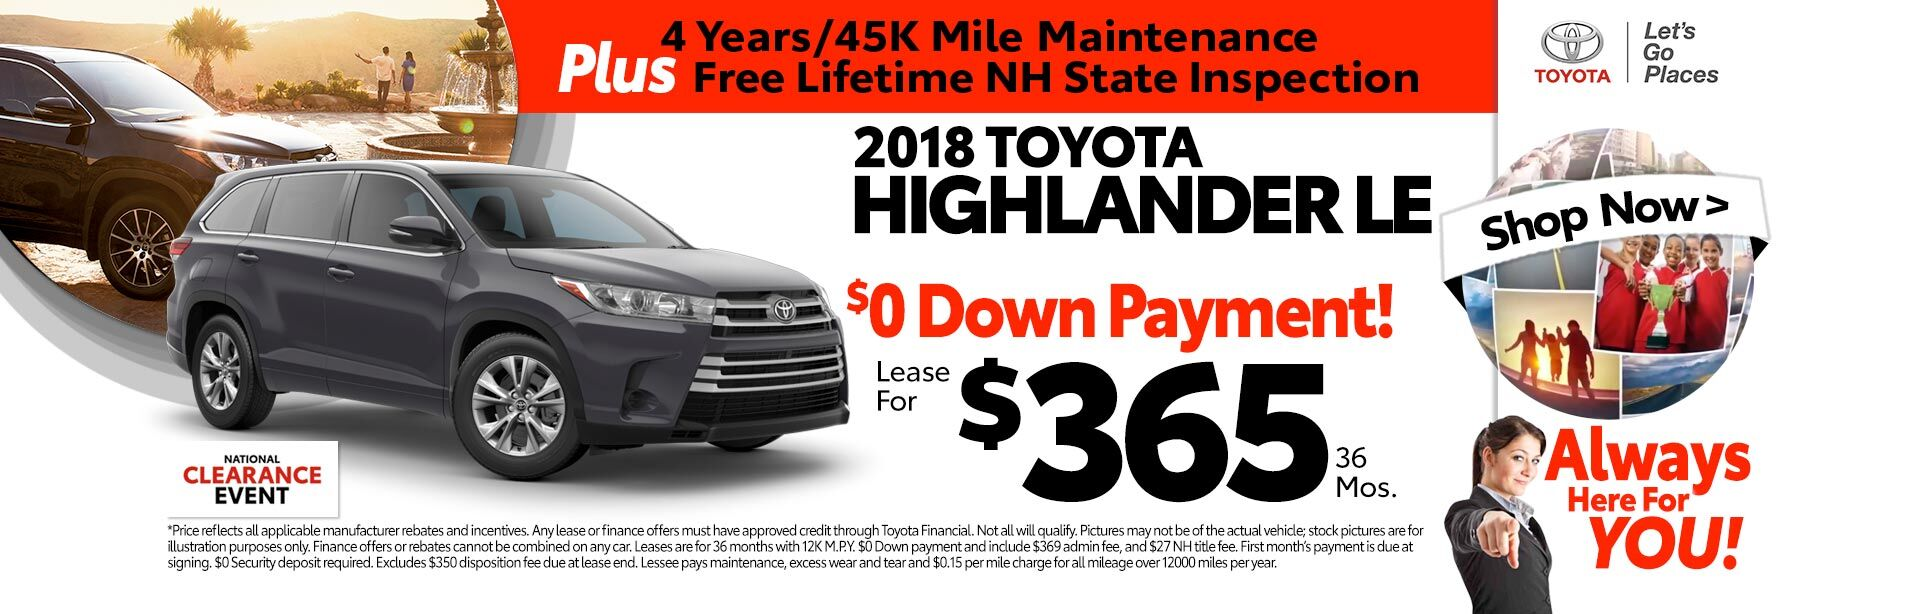 2018 Toyota Highlander LE for as low as $365 a month for 36 months